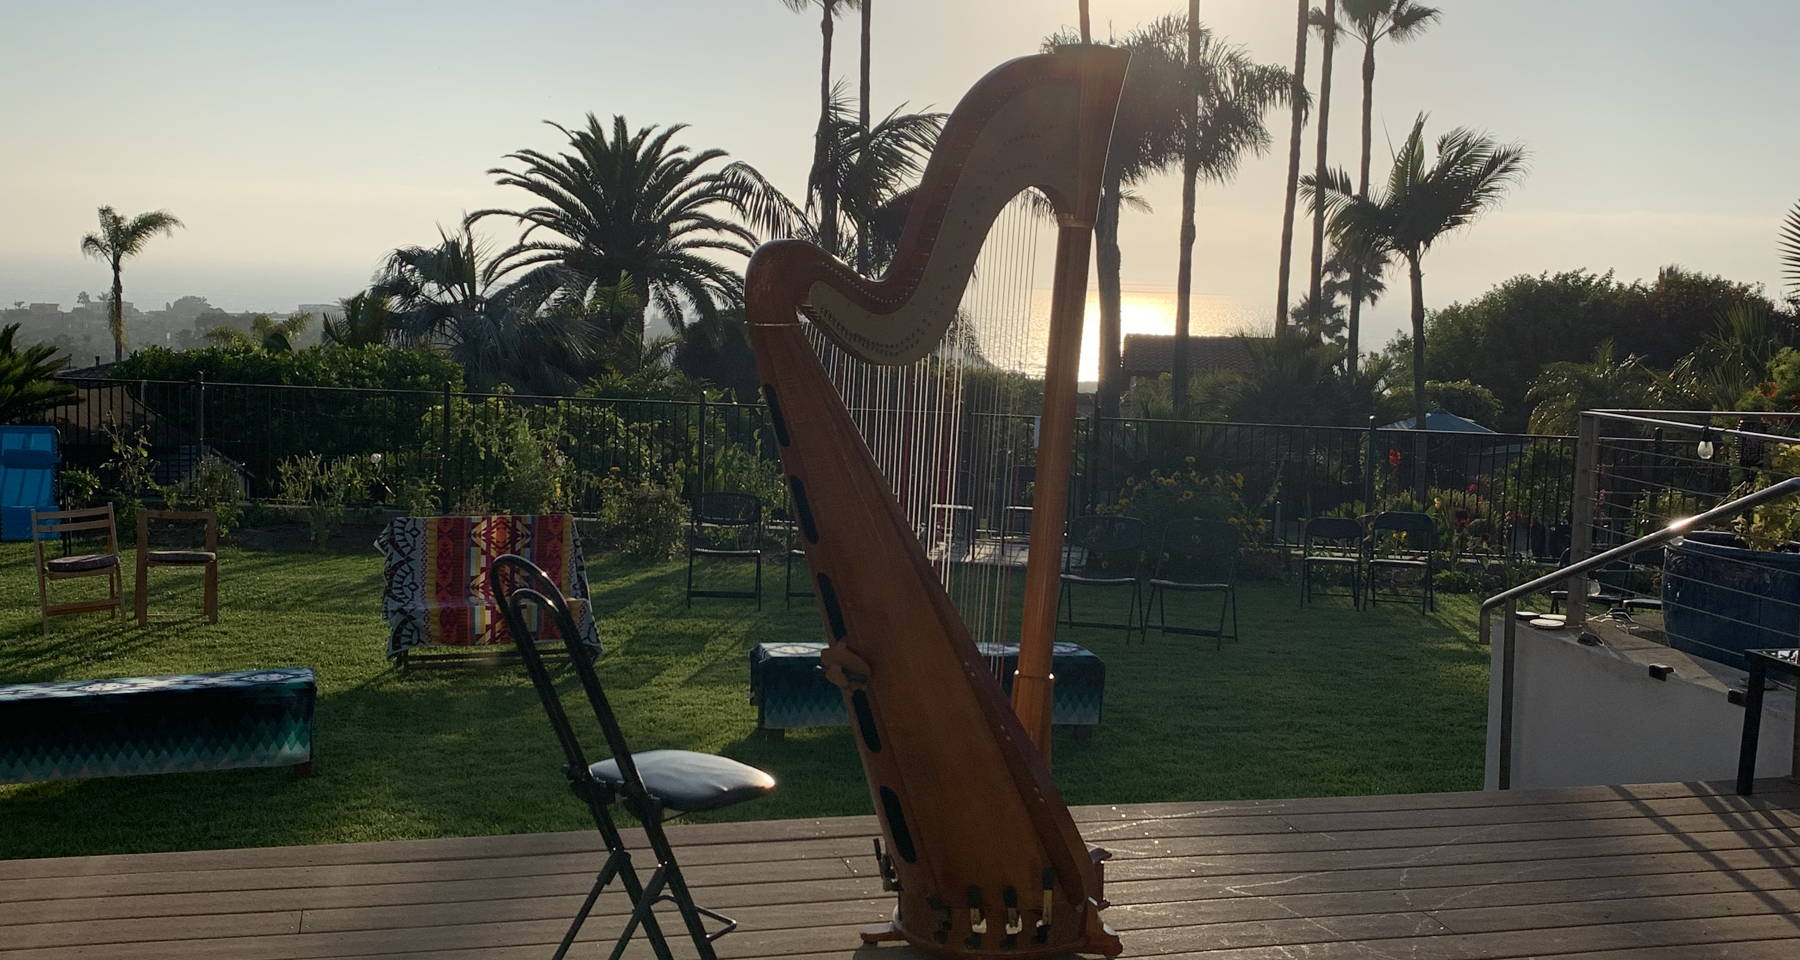 Cello and Violin: Afternoon Backyard Concert